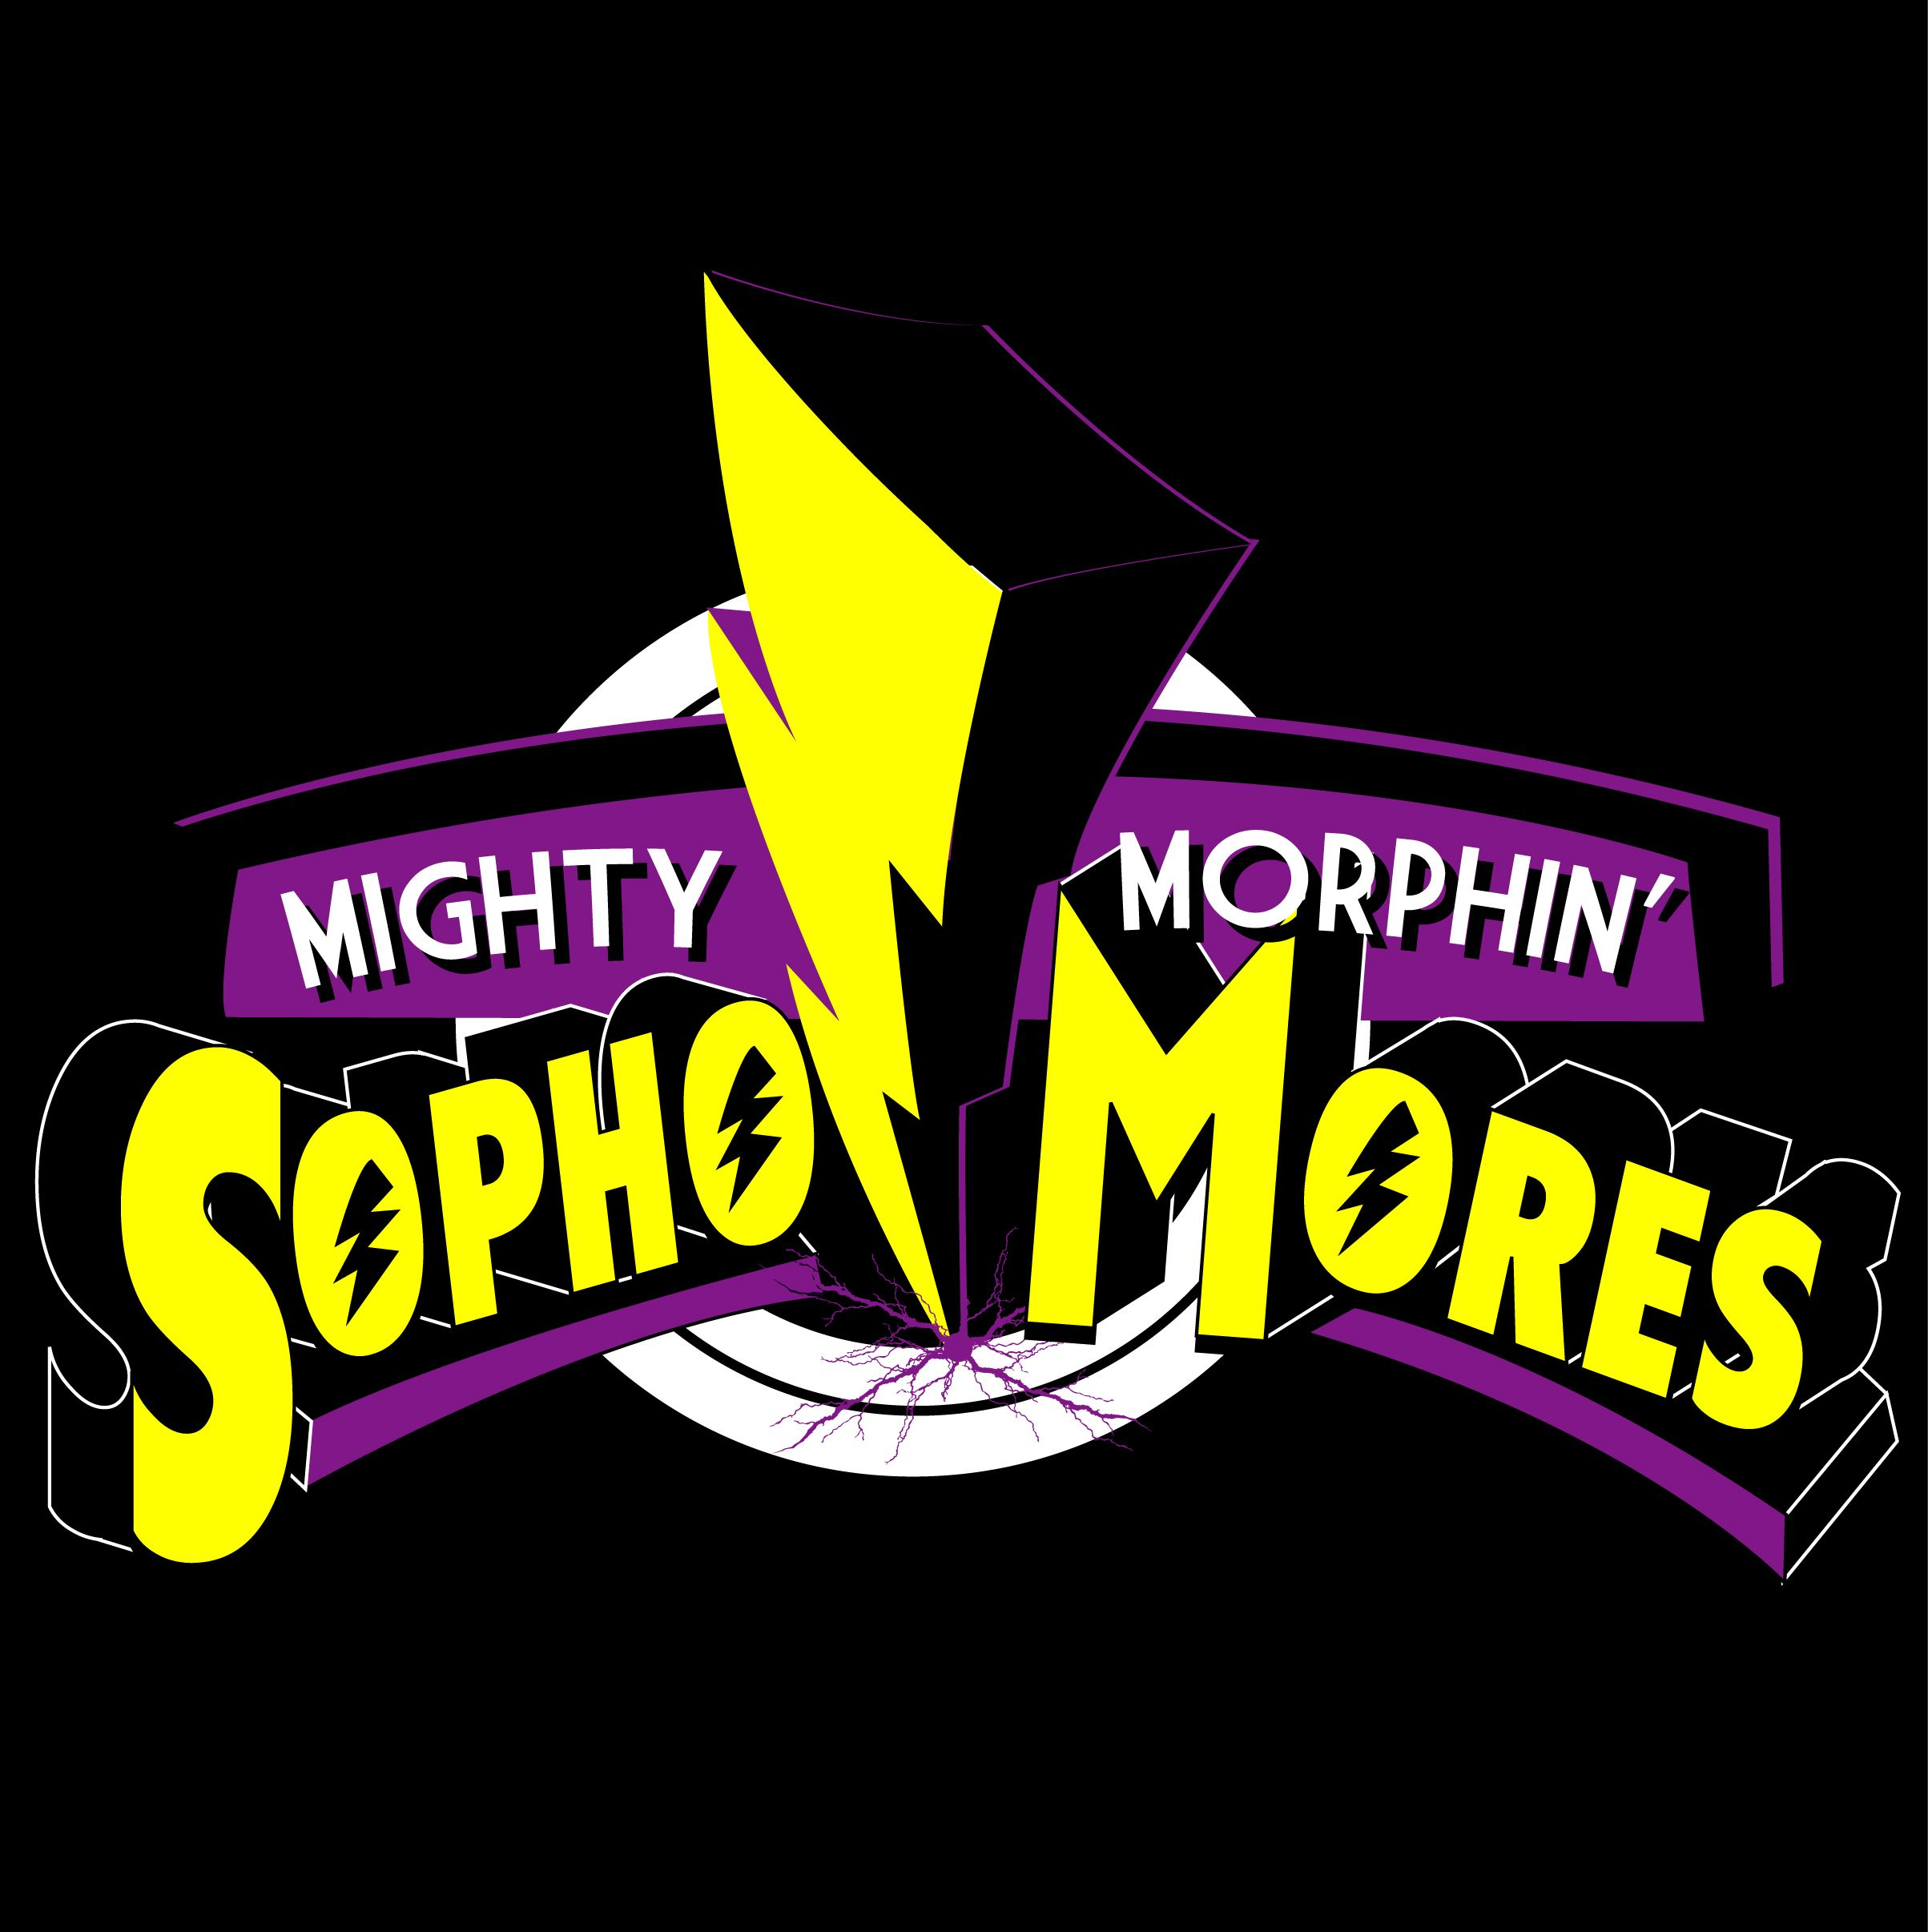 T shirt design ideas for schools - Affton High School Class Of 2013 Mighty Morphin Sophomores T Shirt Design